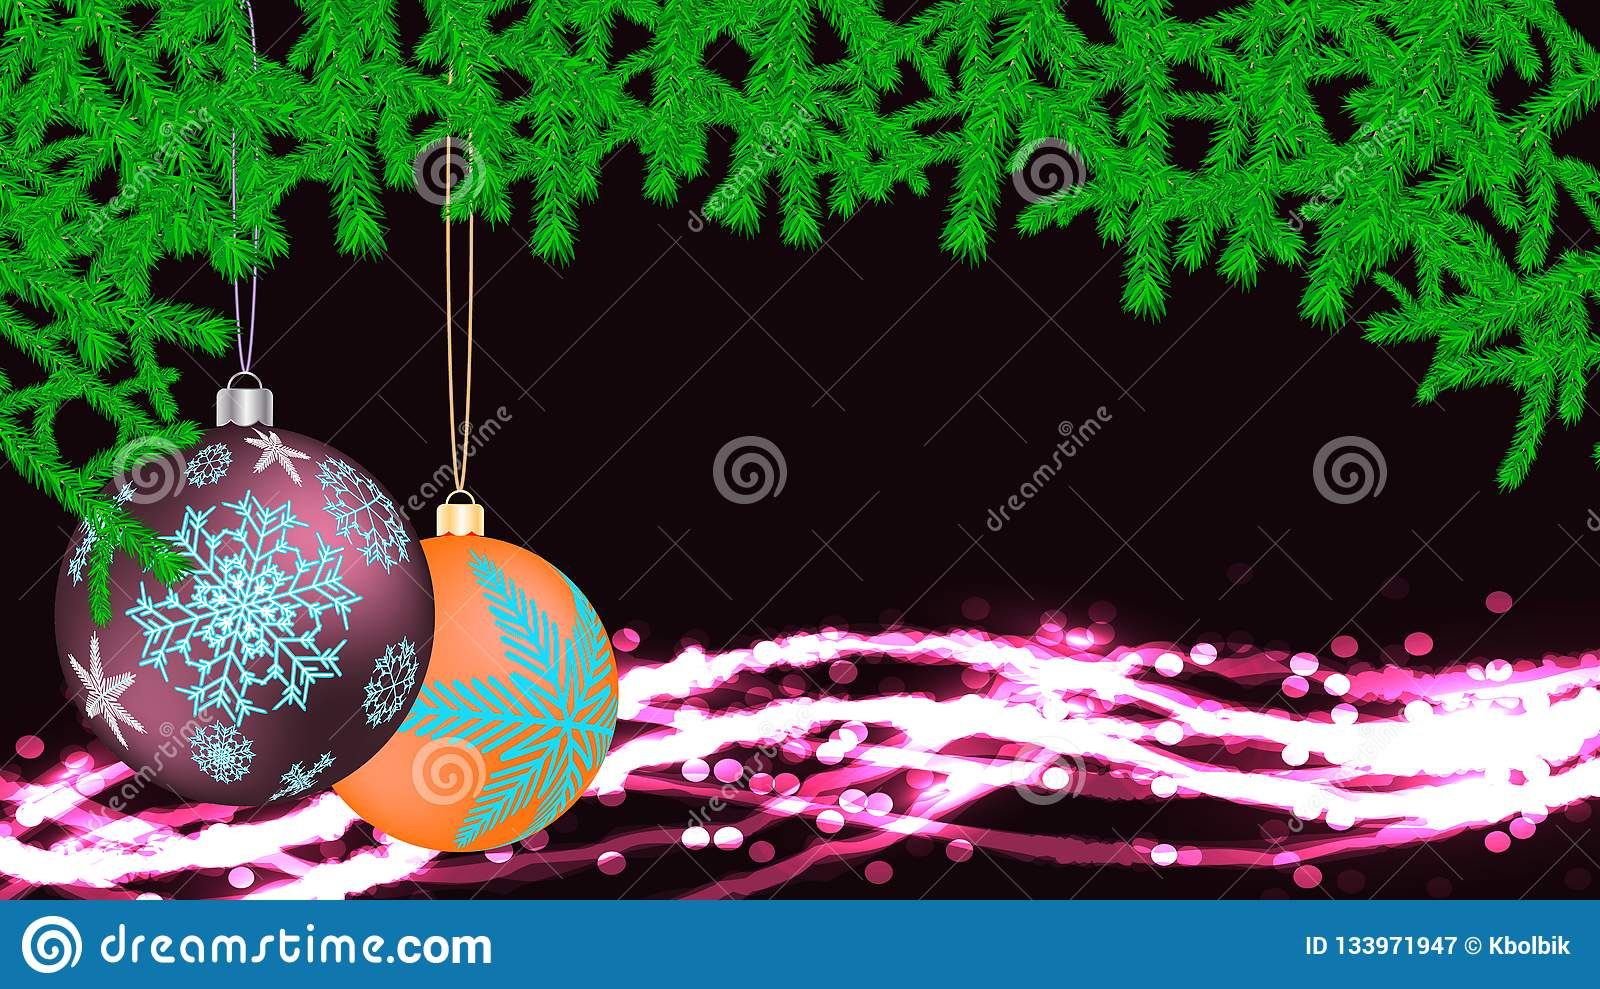 Festive beautiful Christmas card with New Year`s rounds of violet yellow balls, toys with a frame made of fir branches